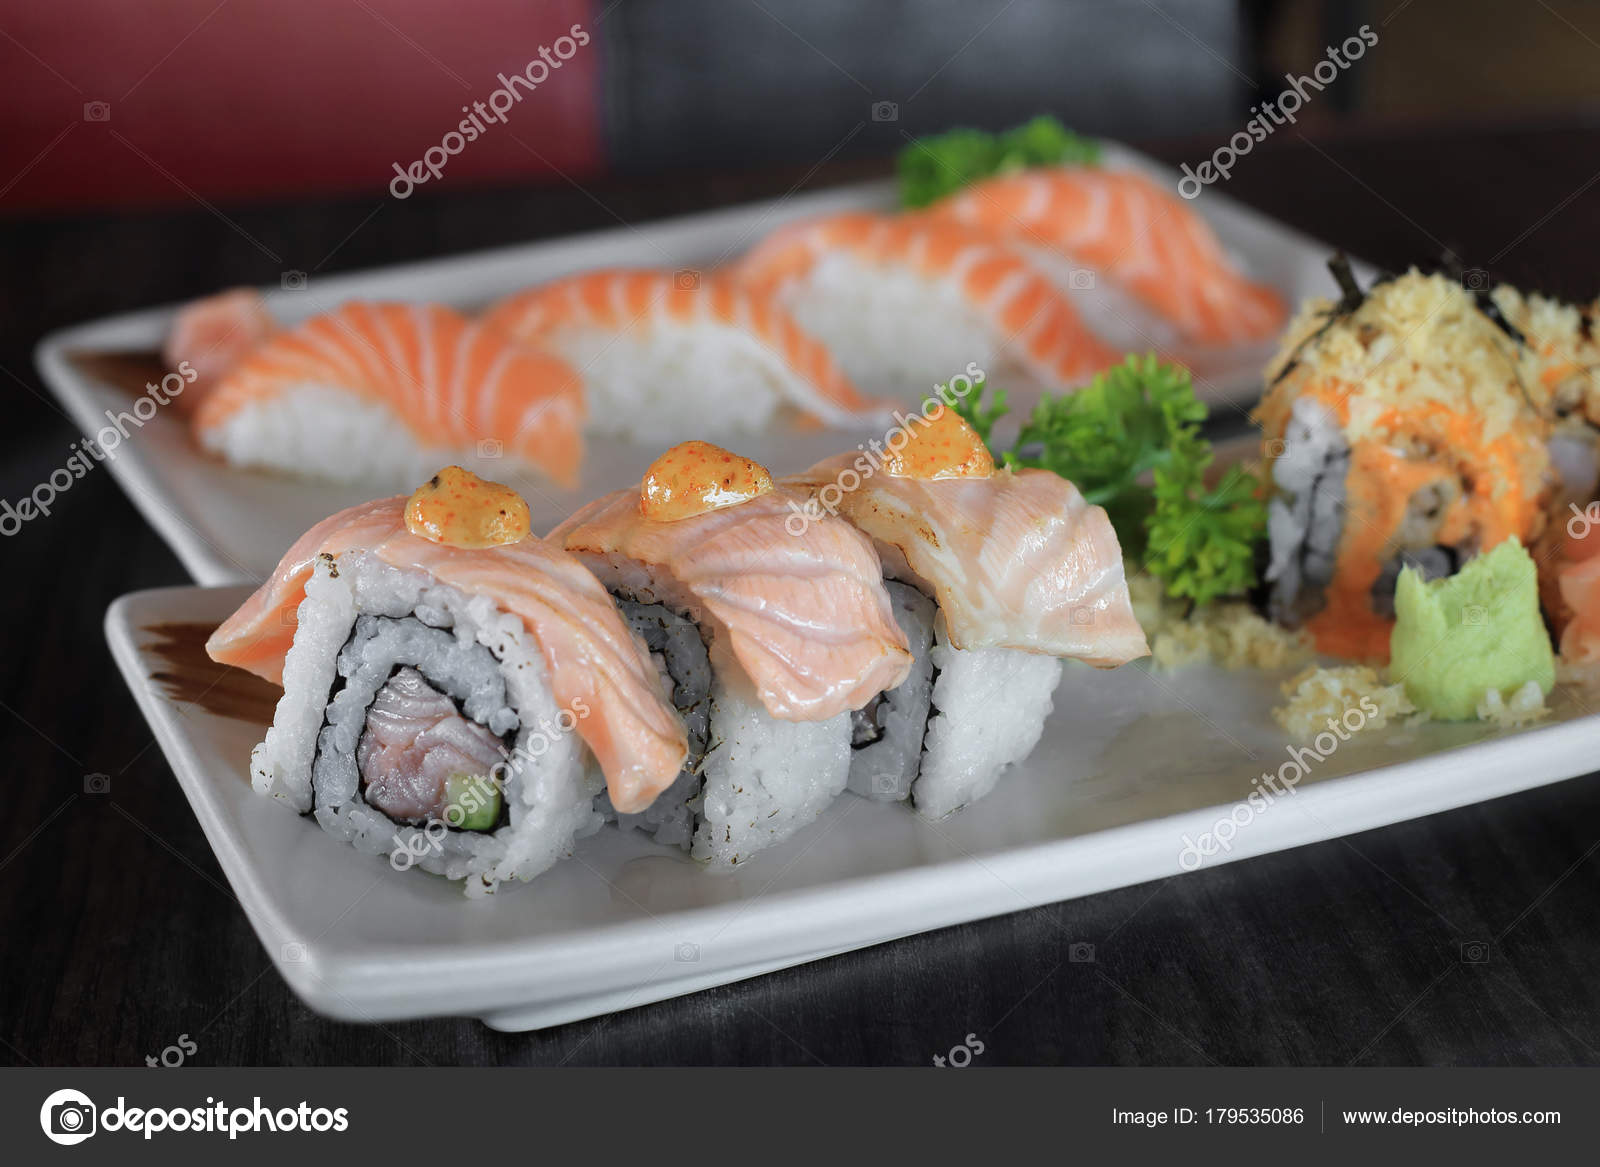 Grilled salmon sushi roll japanese food recipe stock photo grilled salmon sushi roll japanese food recipe stock photo forumfinder Images